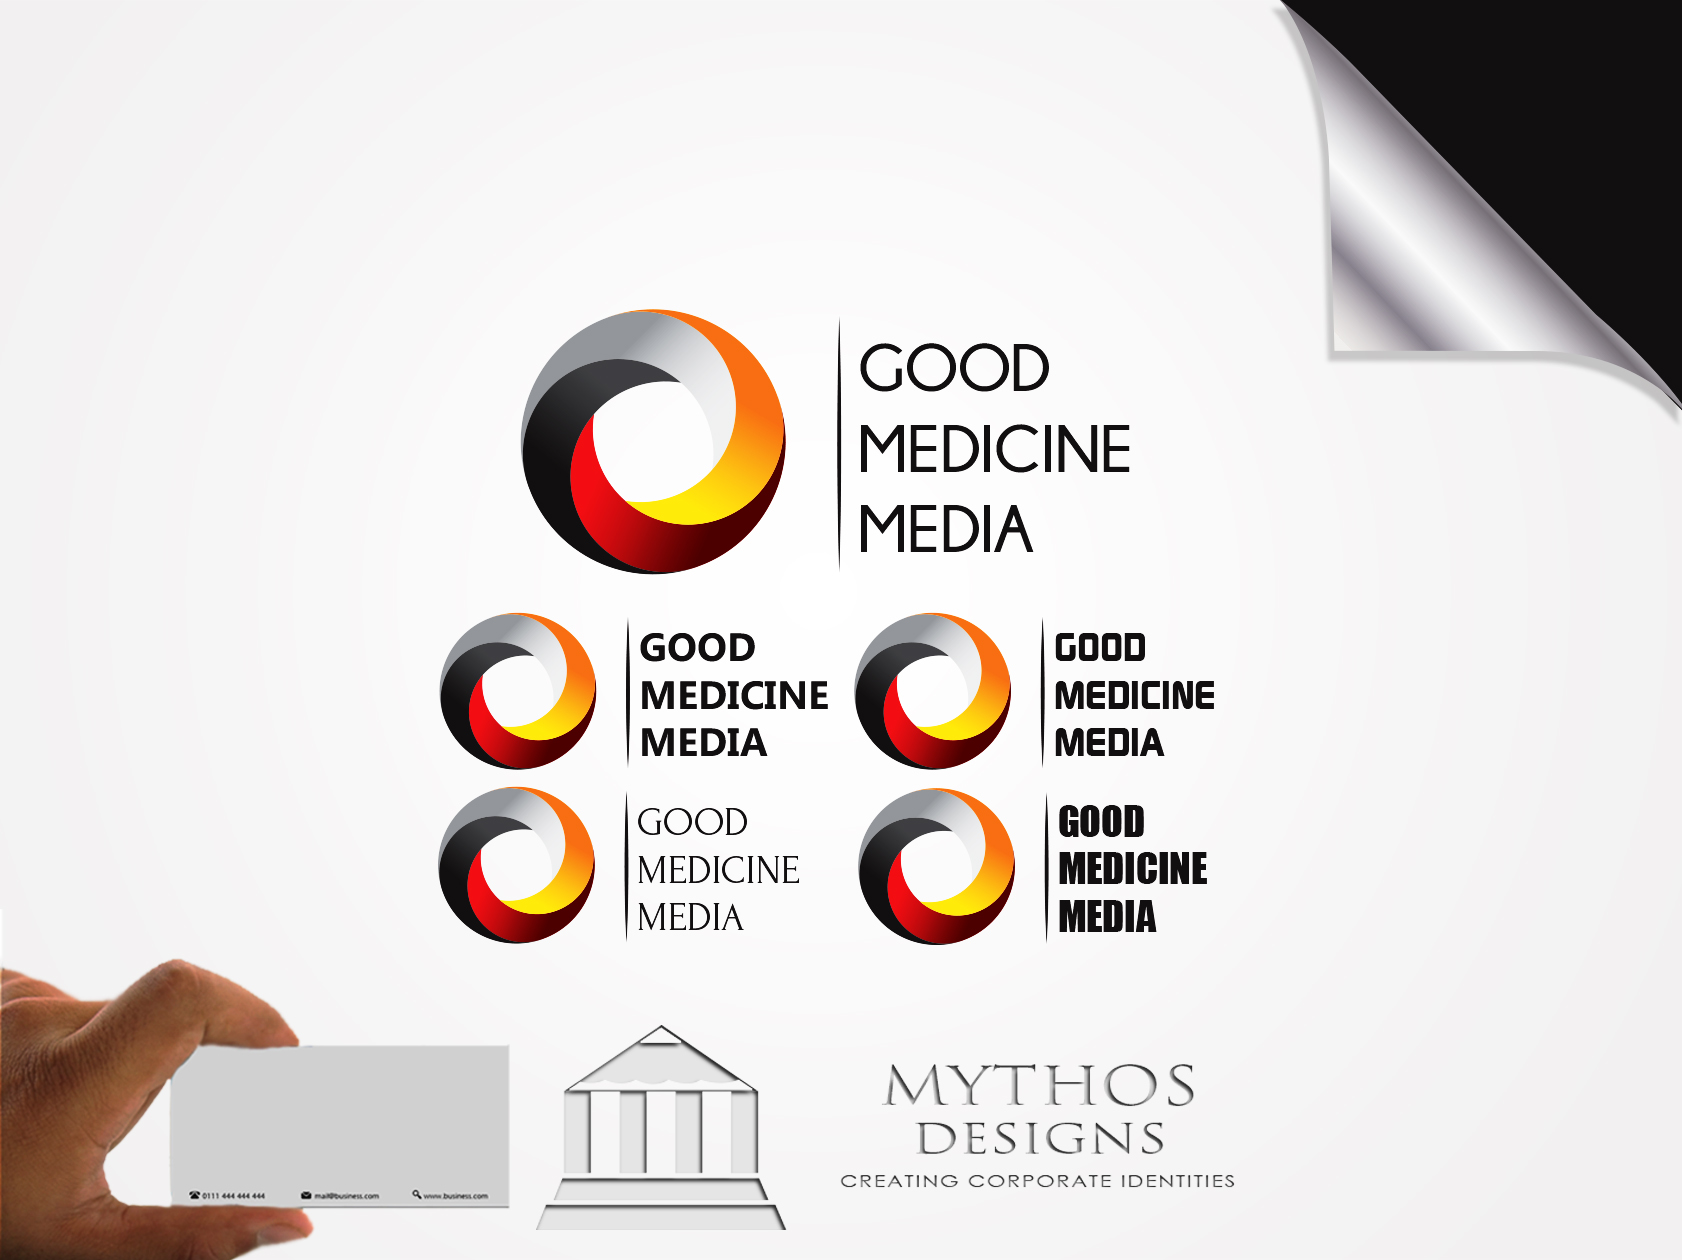 Logo Design by Mythos Designs - Entry No. 182 in the Logo Design Contest Good Medicine Media Logo Design.